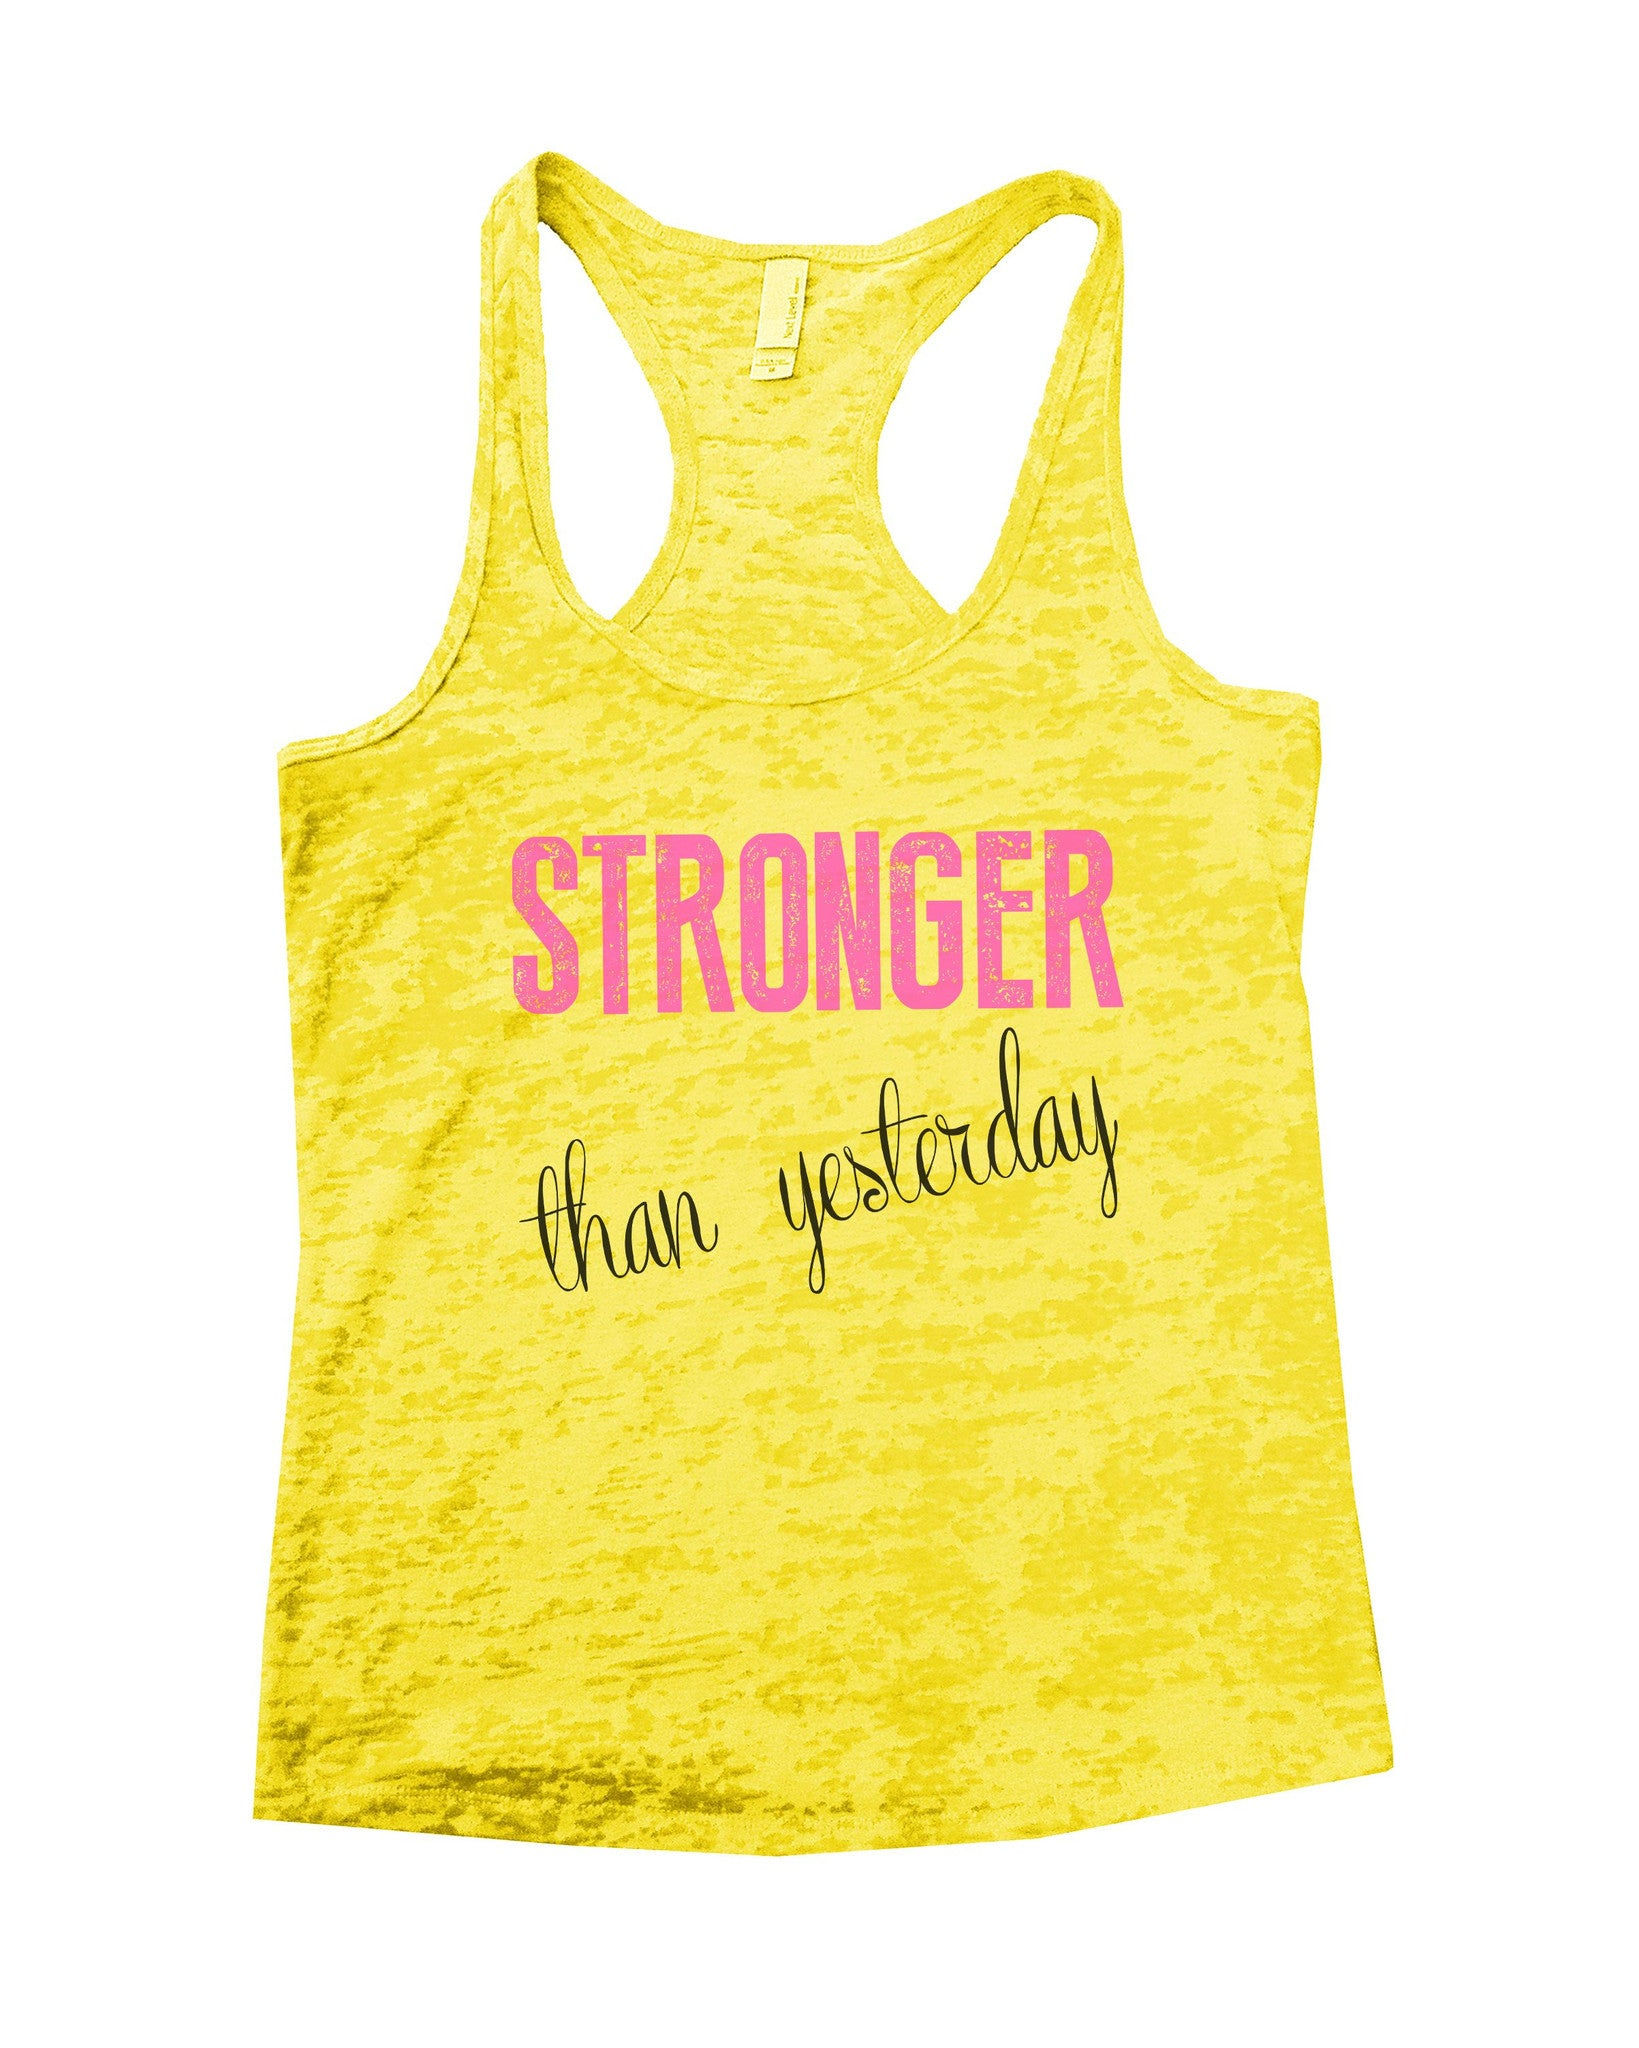 Stronger Than Yesterday Burnout Tank Top By BurnoutTankTops.com - 768 - Funny Shirts Tank Tops Burnouts and Triblends  - 7